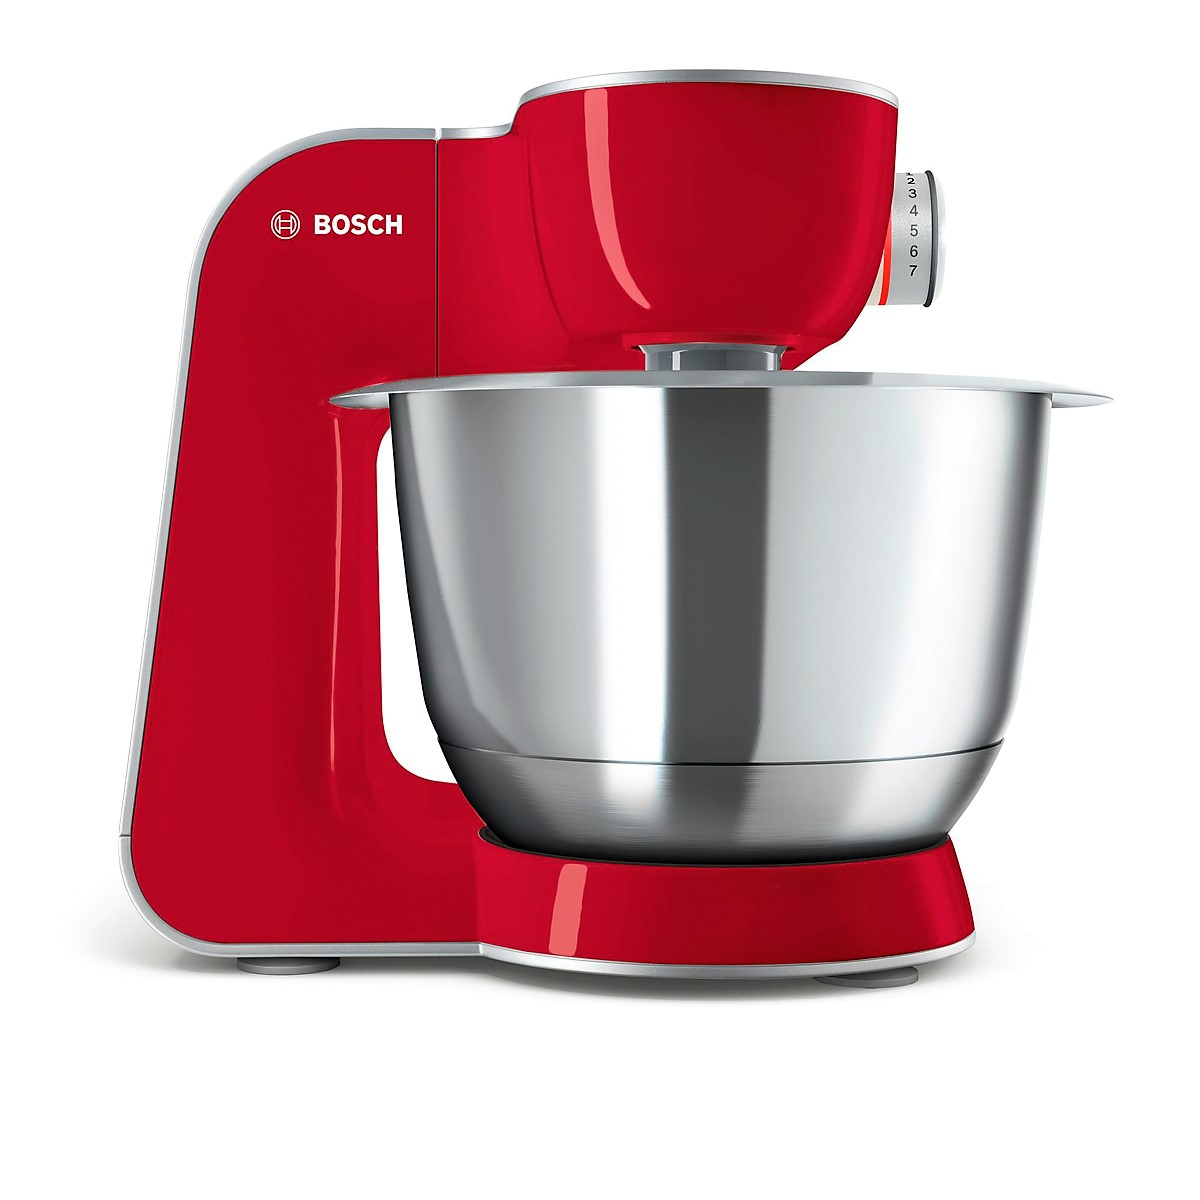 Bosch - Kitchen Machine MUM5 Styline Colour red silver 1